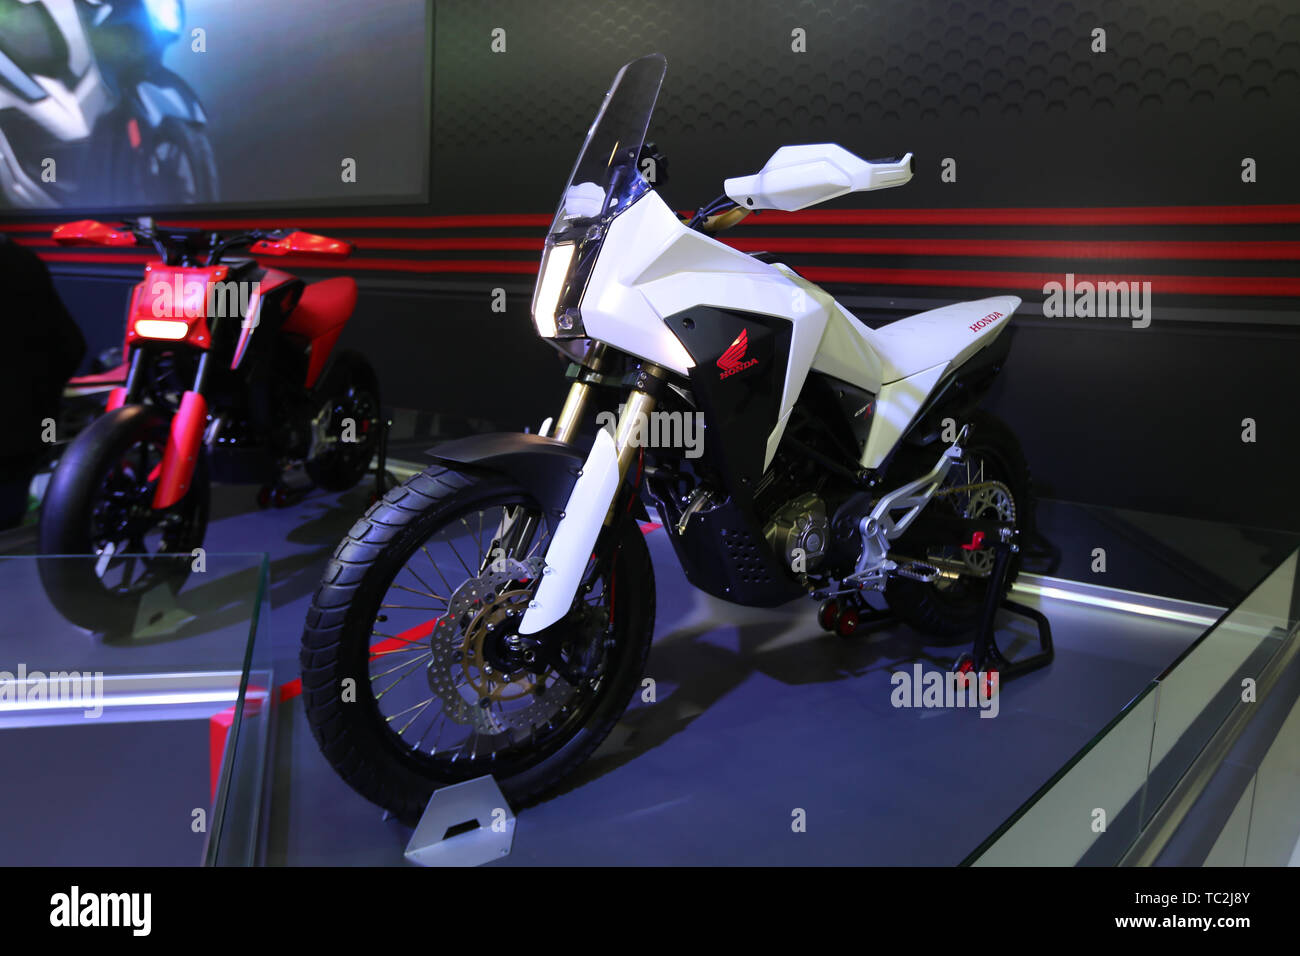 ISTANBUL, TURKEY - FEBRUARY 23, 2019: Honda CB125X on display at Motobike Istanbul in Istanbul Exhibition Center - Stock Image